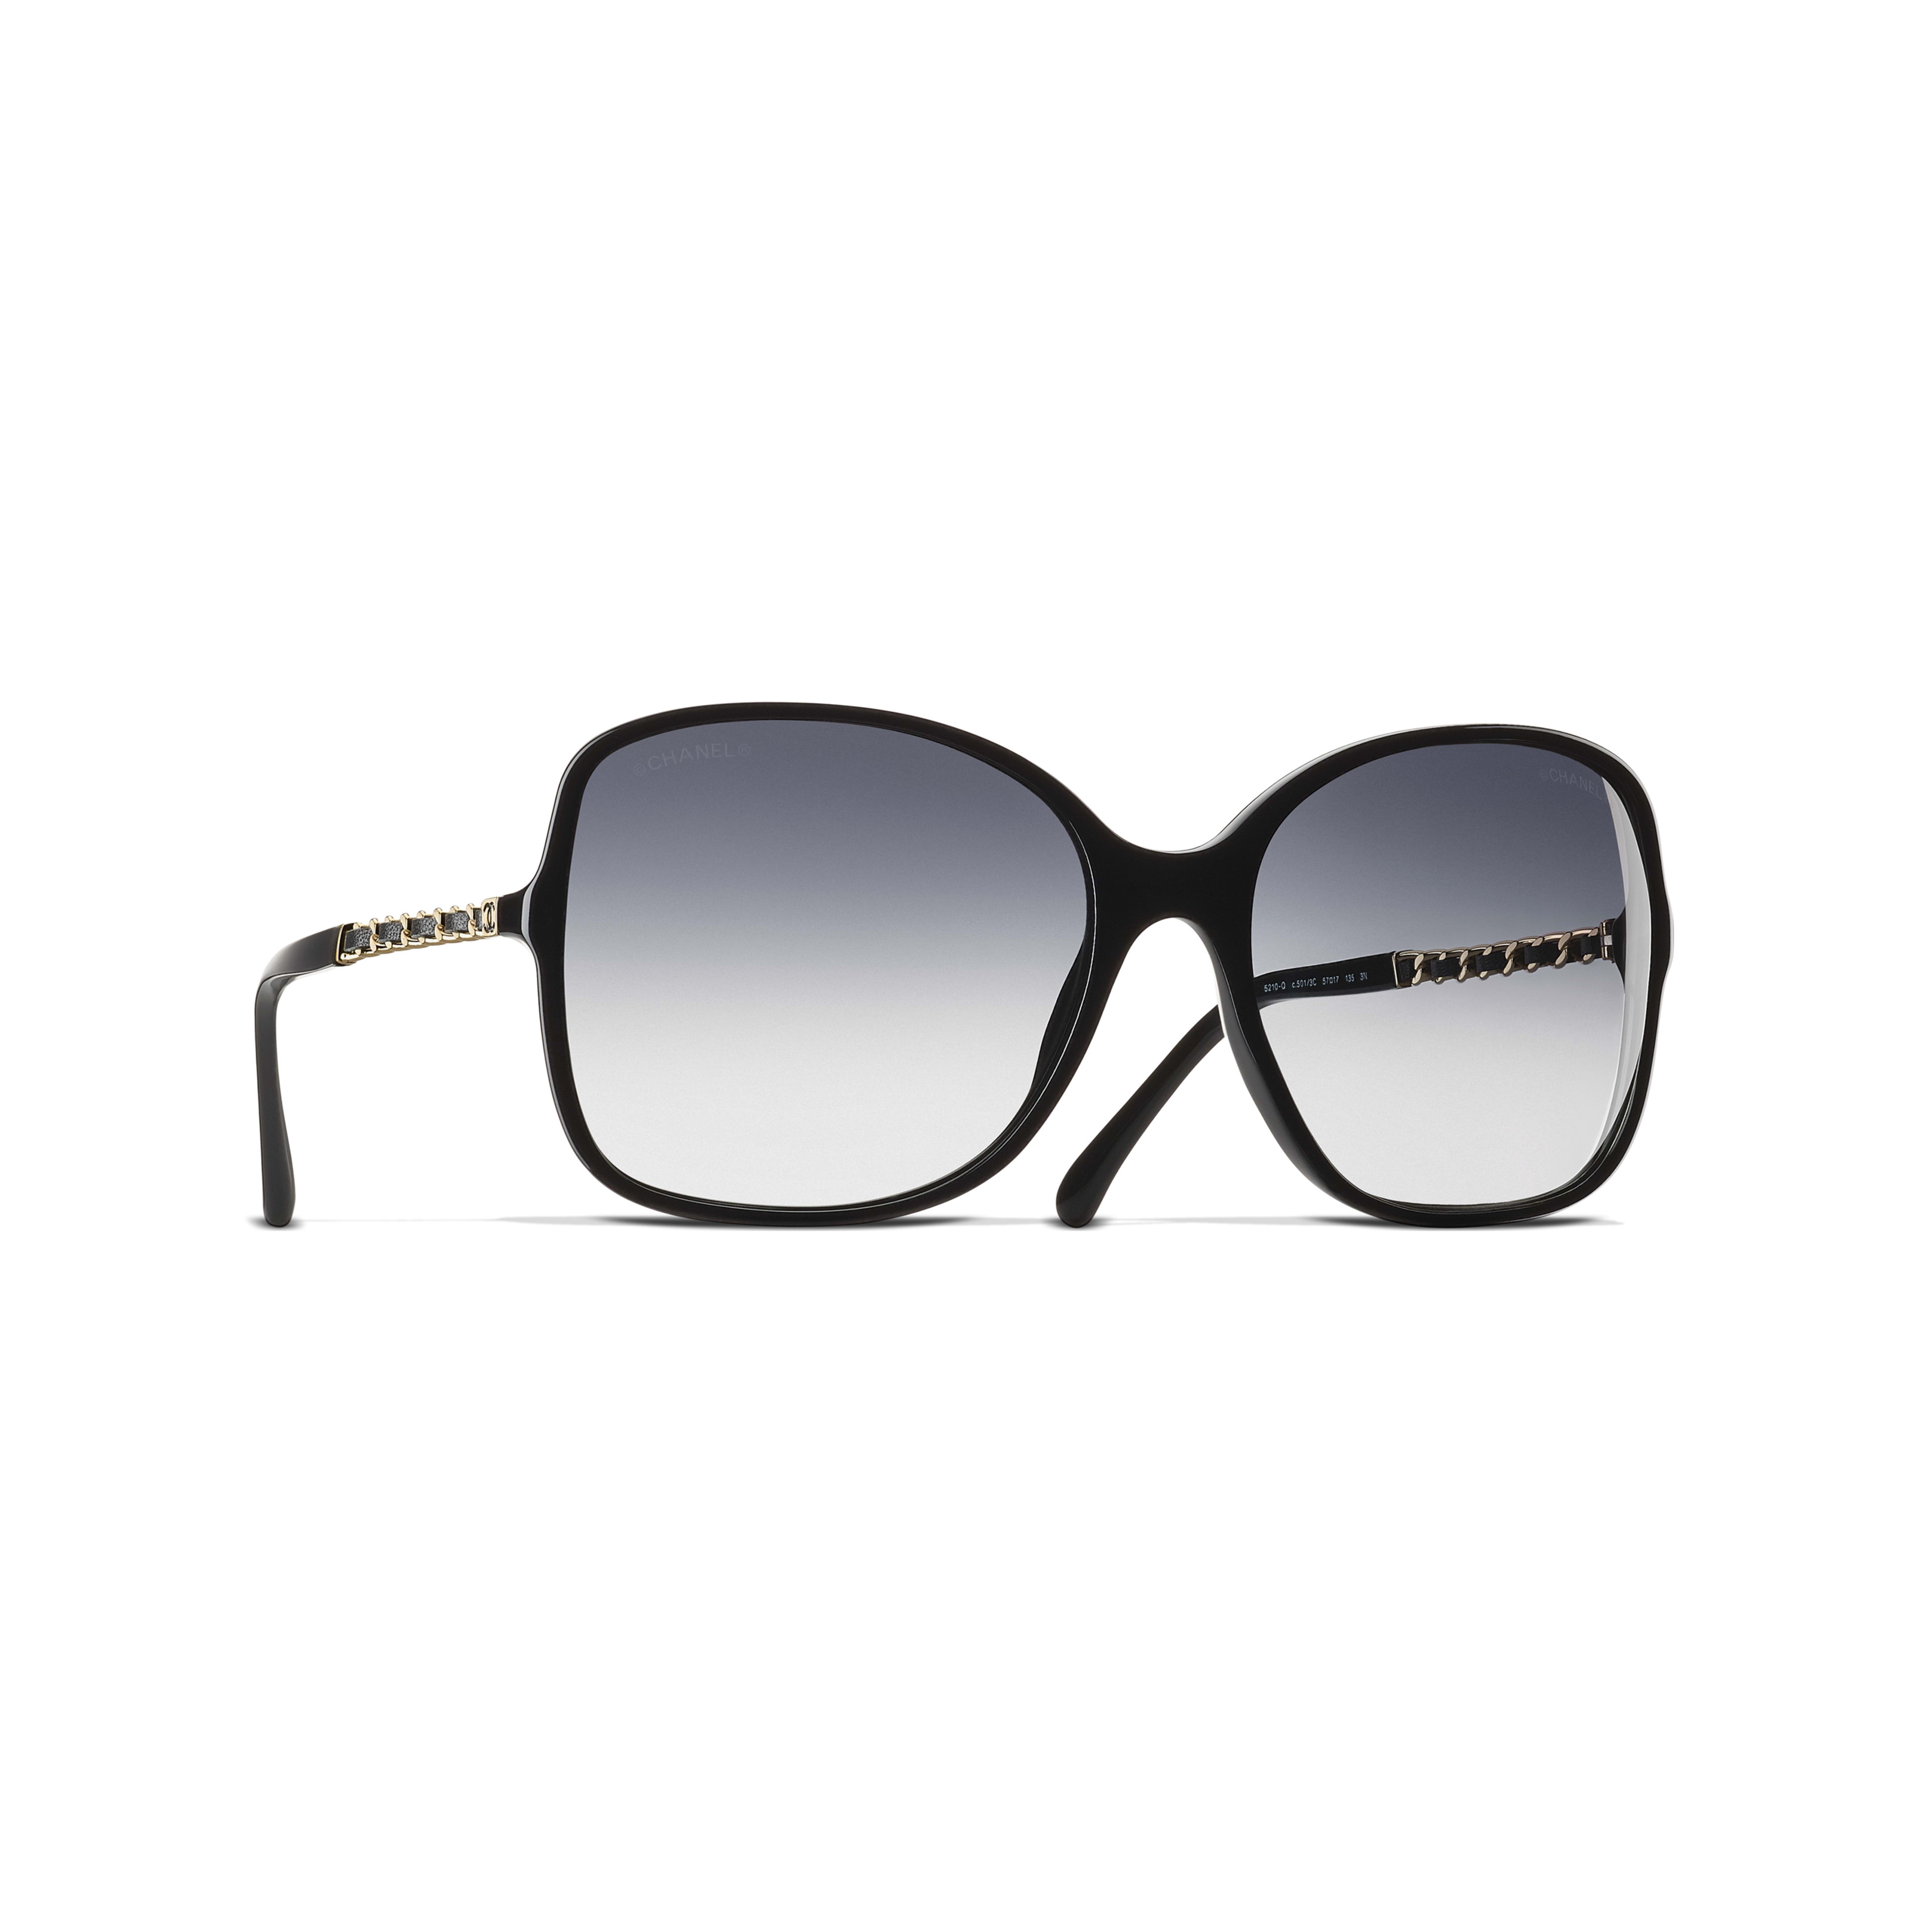 Square Sunglasses Acetate & Lambskin Black -                                               view 1 - see full sized version